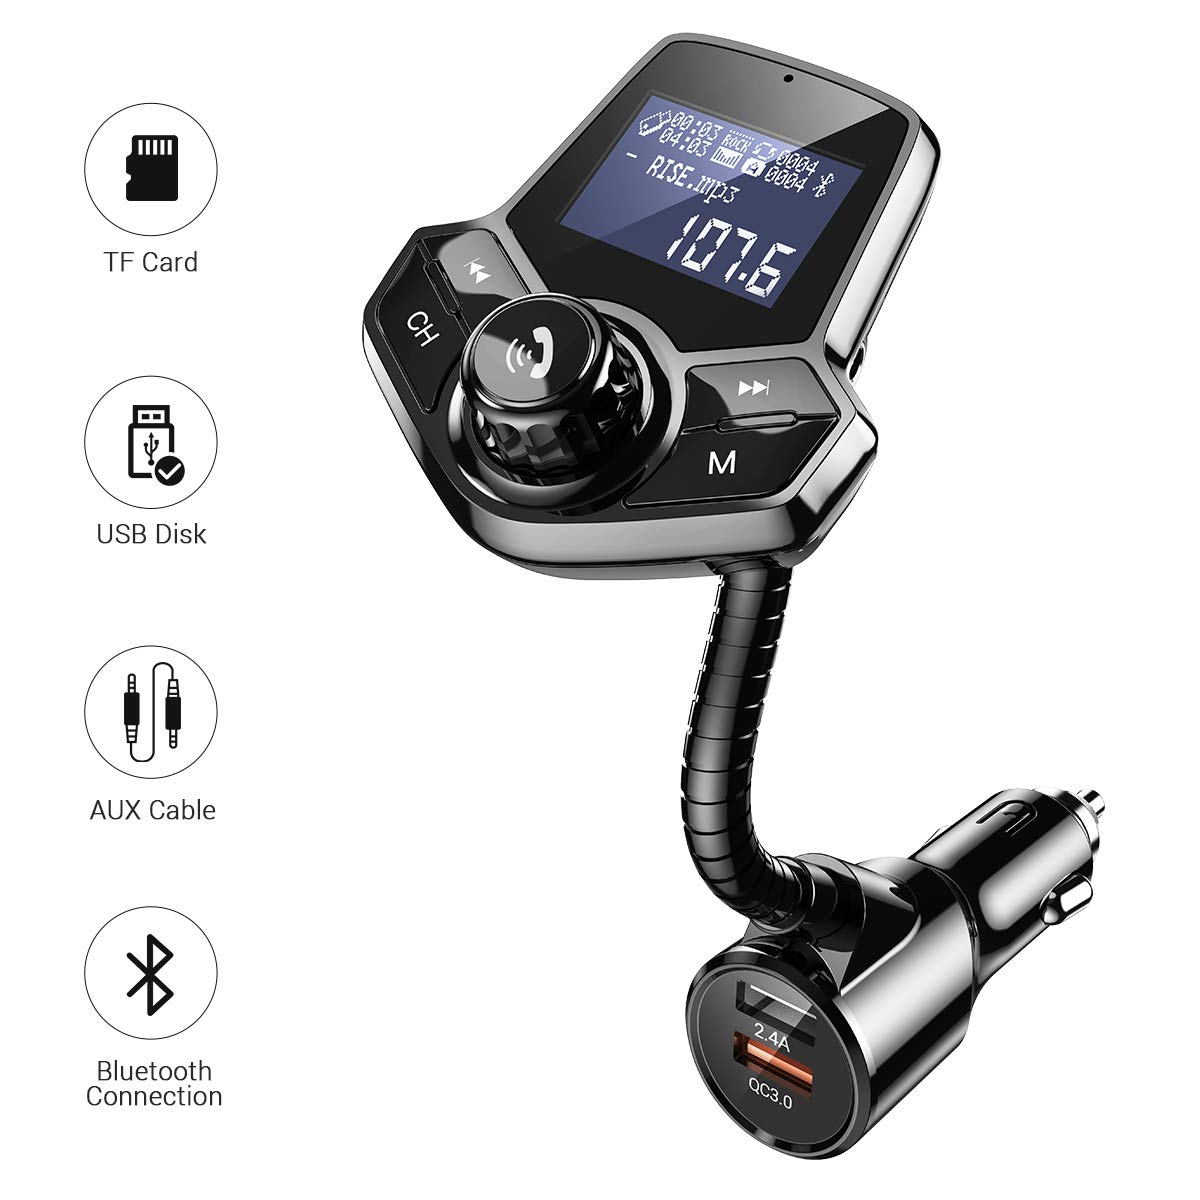 Bluetooth FM Transmitter for Car, QC3.0 Fast Charger Fm Transmitter Bluetooth, Wireless Car Audio Adapter Hands-Free Kit with 1.44'' Display for AUX Input/Output, TF Card and U Disk by Ainope